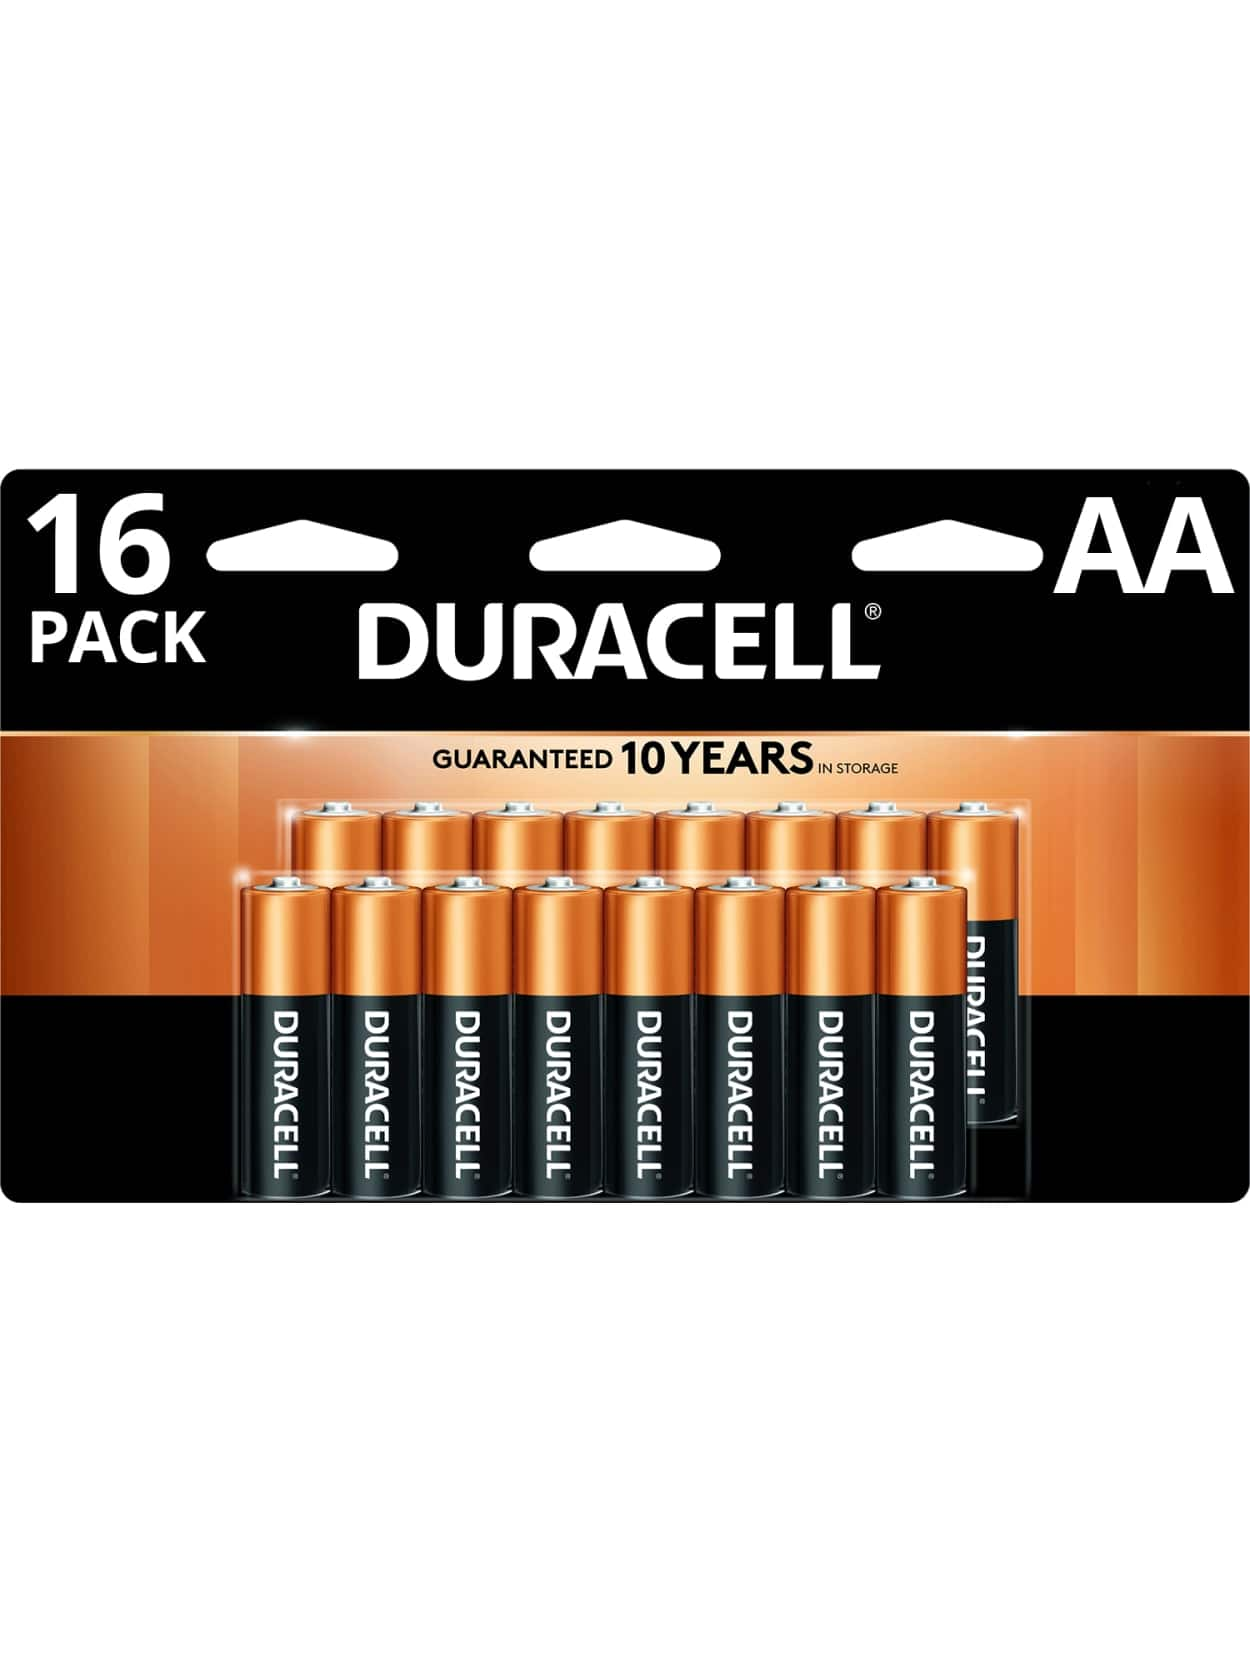 Again At Office Depot: 100% Back In Rewards  Duracell® Coppertop AA/AAA 16-pk & 24-pk Batteries Valid In Store/Online From 7/18/21 To 7/24/21 11:59 PM ET Or While Supplies Last.